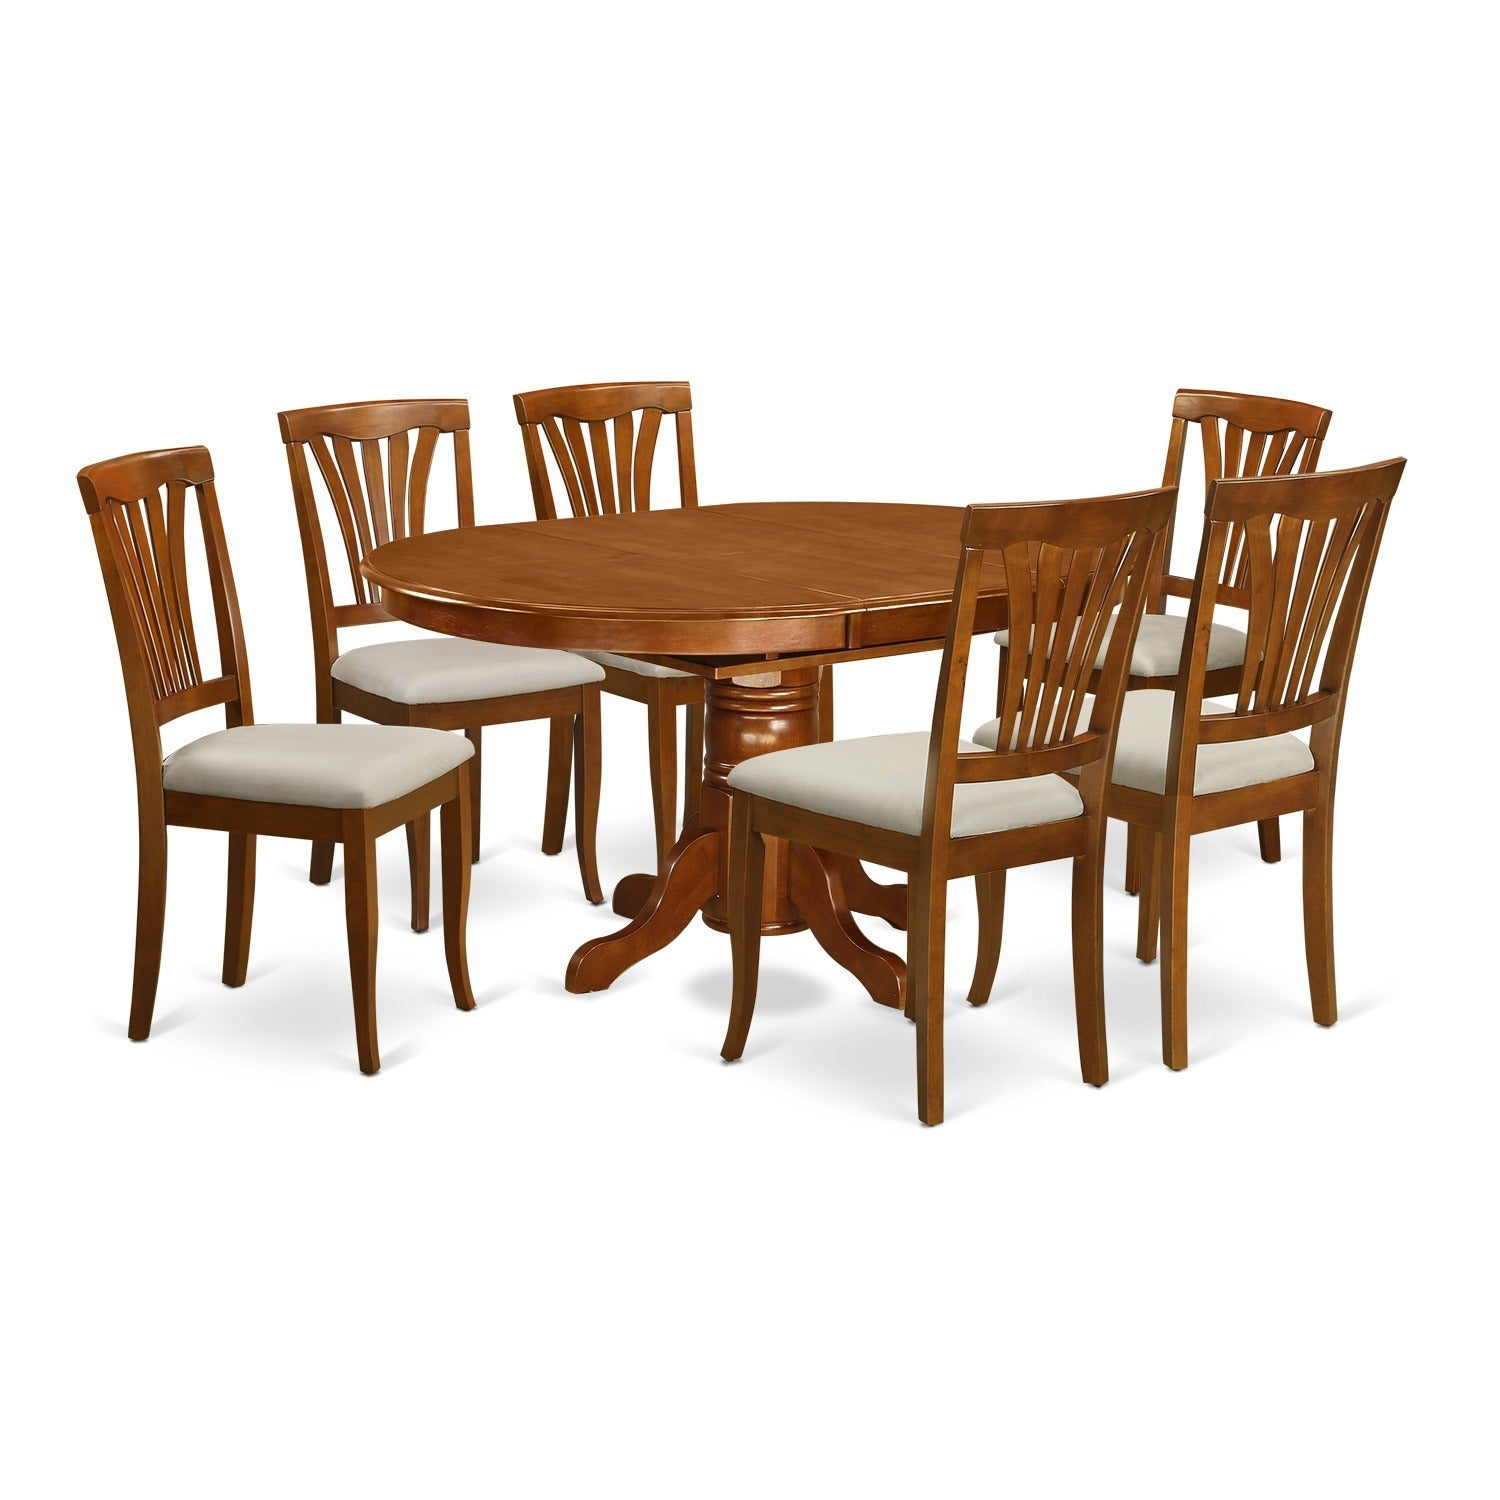 7 Piece Oval Dining Room Table